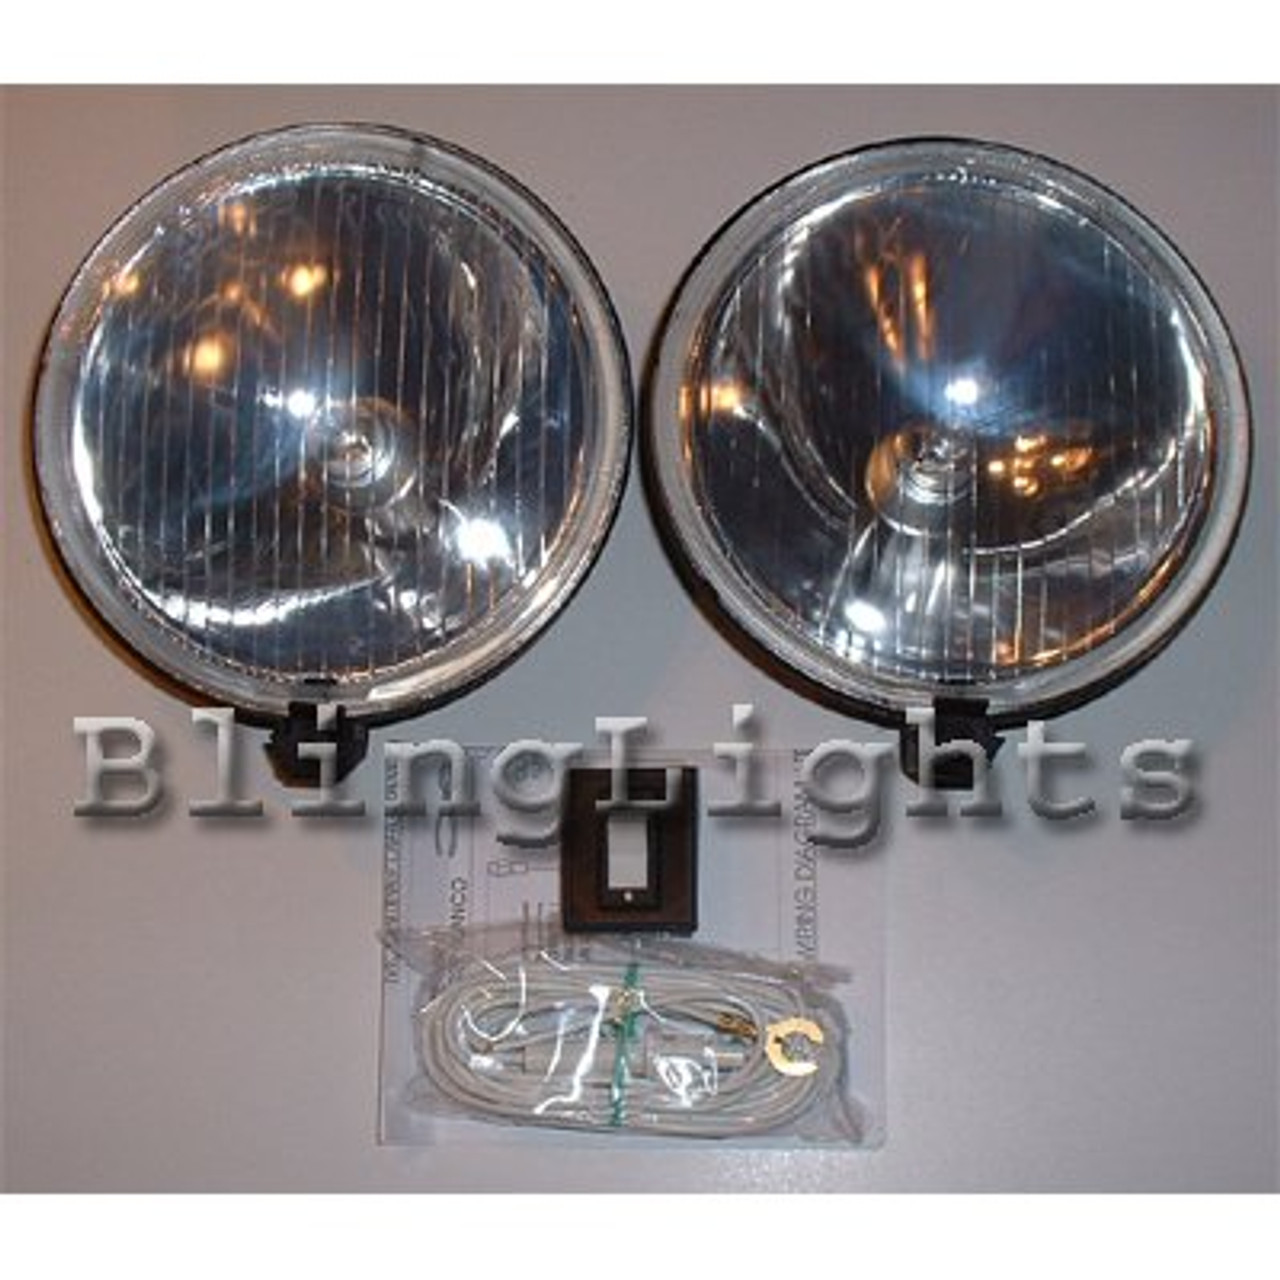 2000 2001 2002 2003 2004 2005 Daihatsu Terios Xenon Fog Lamps Driving Lights Foglamps Foglights Kit